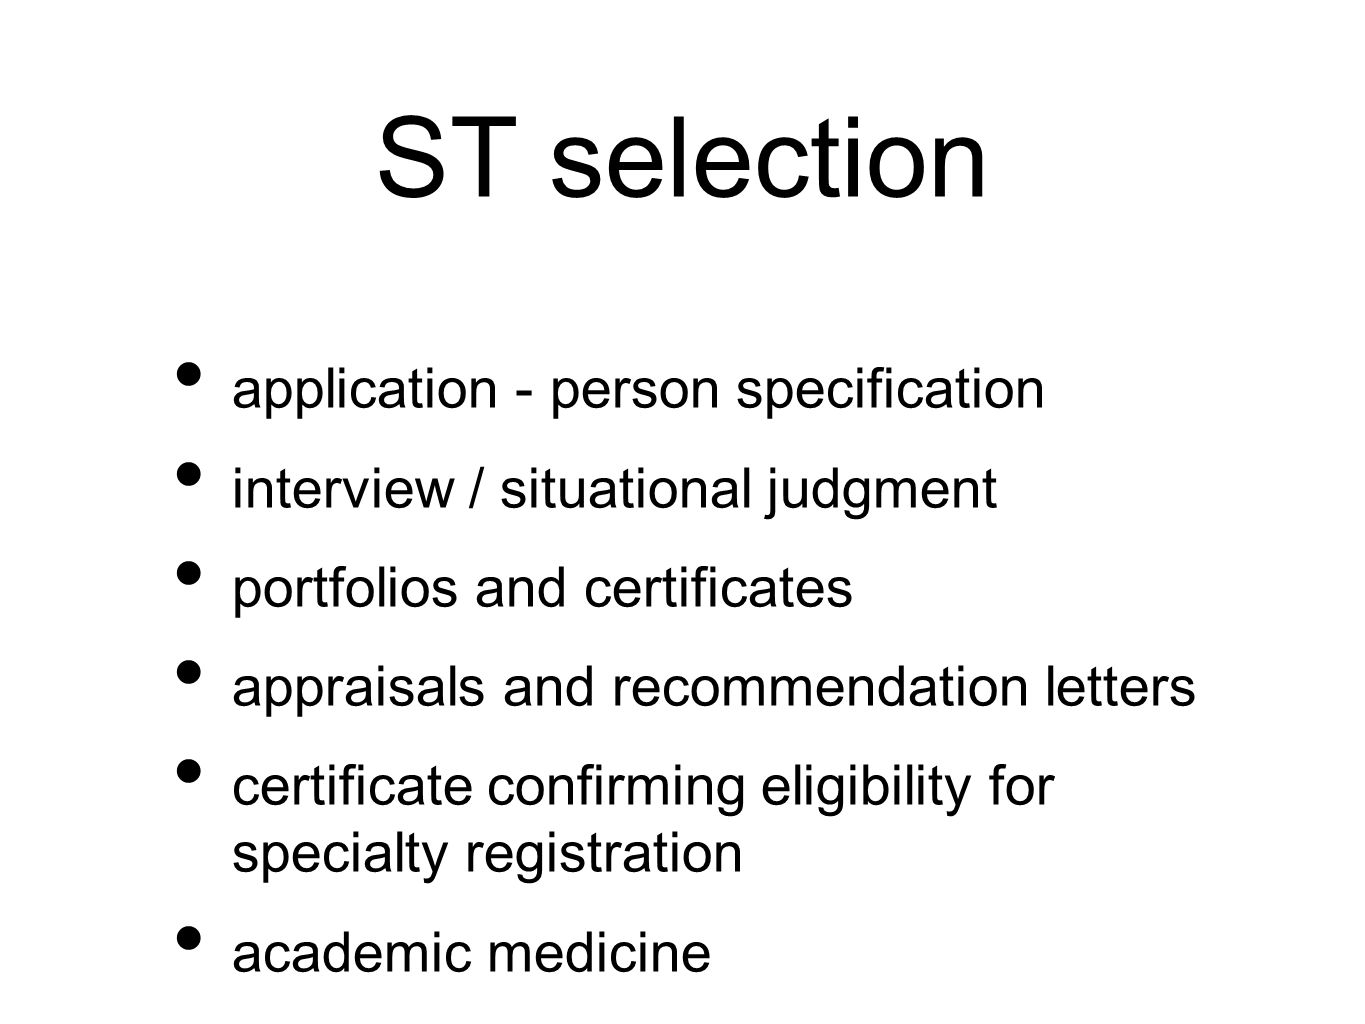 ST selection application - person specification interview / situational judgment portfolios and certificates appraisals and recommendation letters certificate confirming eligibility for specialty registration academic medicine